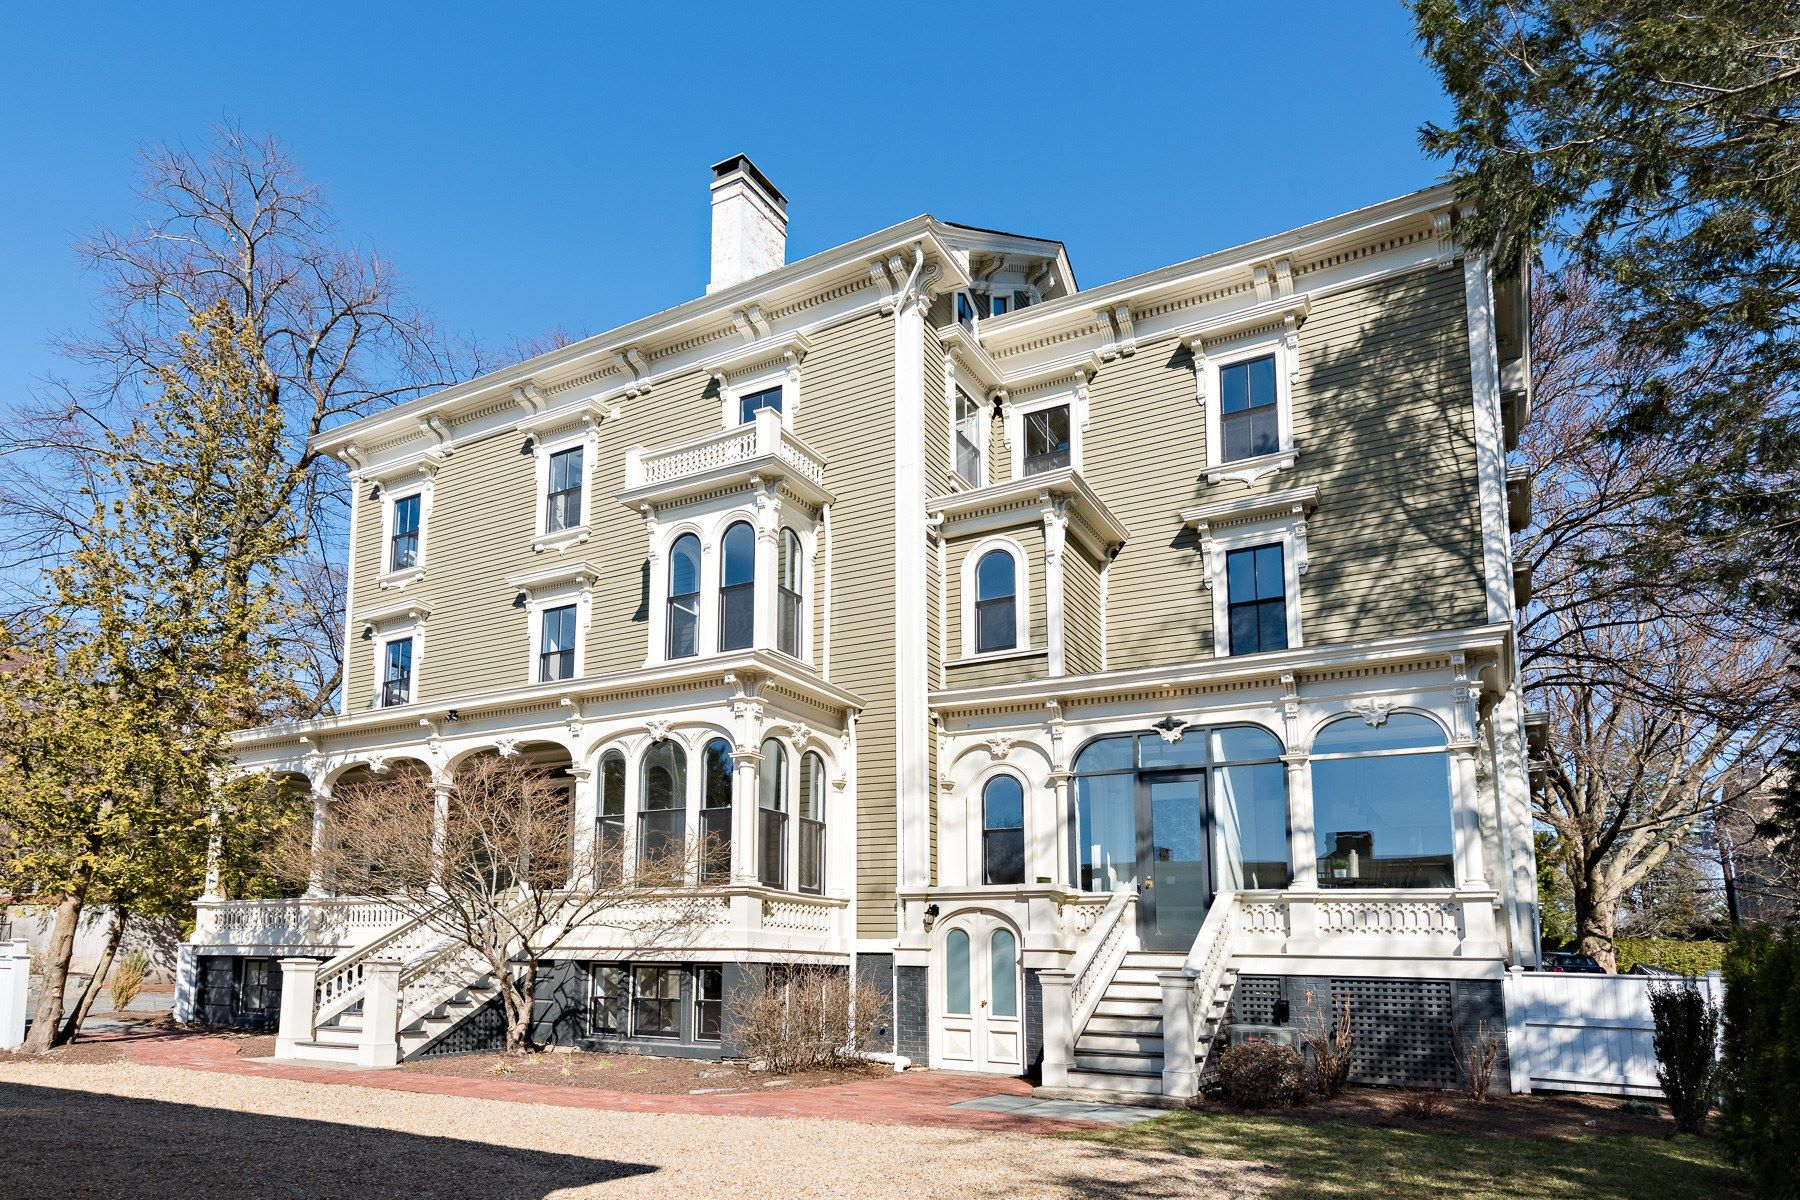 Condominiums for Sale at 13 Cushing Street, #2, East Side Of Providence, RI 13 Cushing Street, 2 Providence, Rhode Island 02906 United States